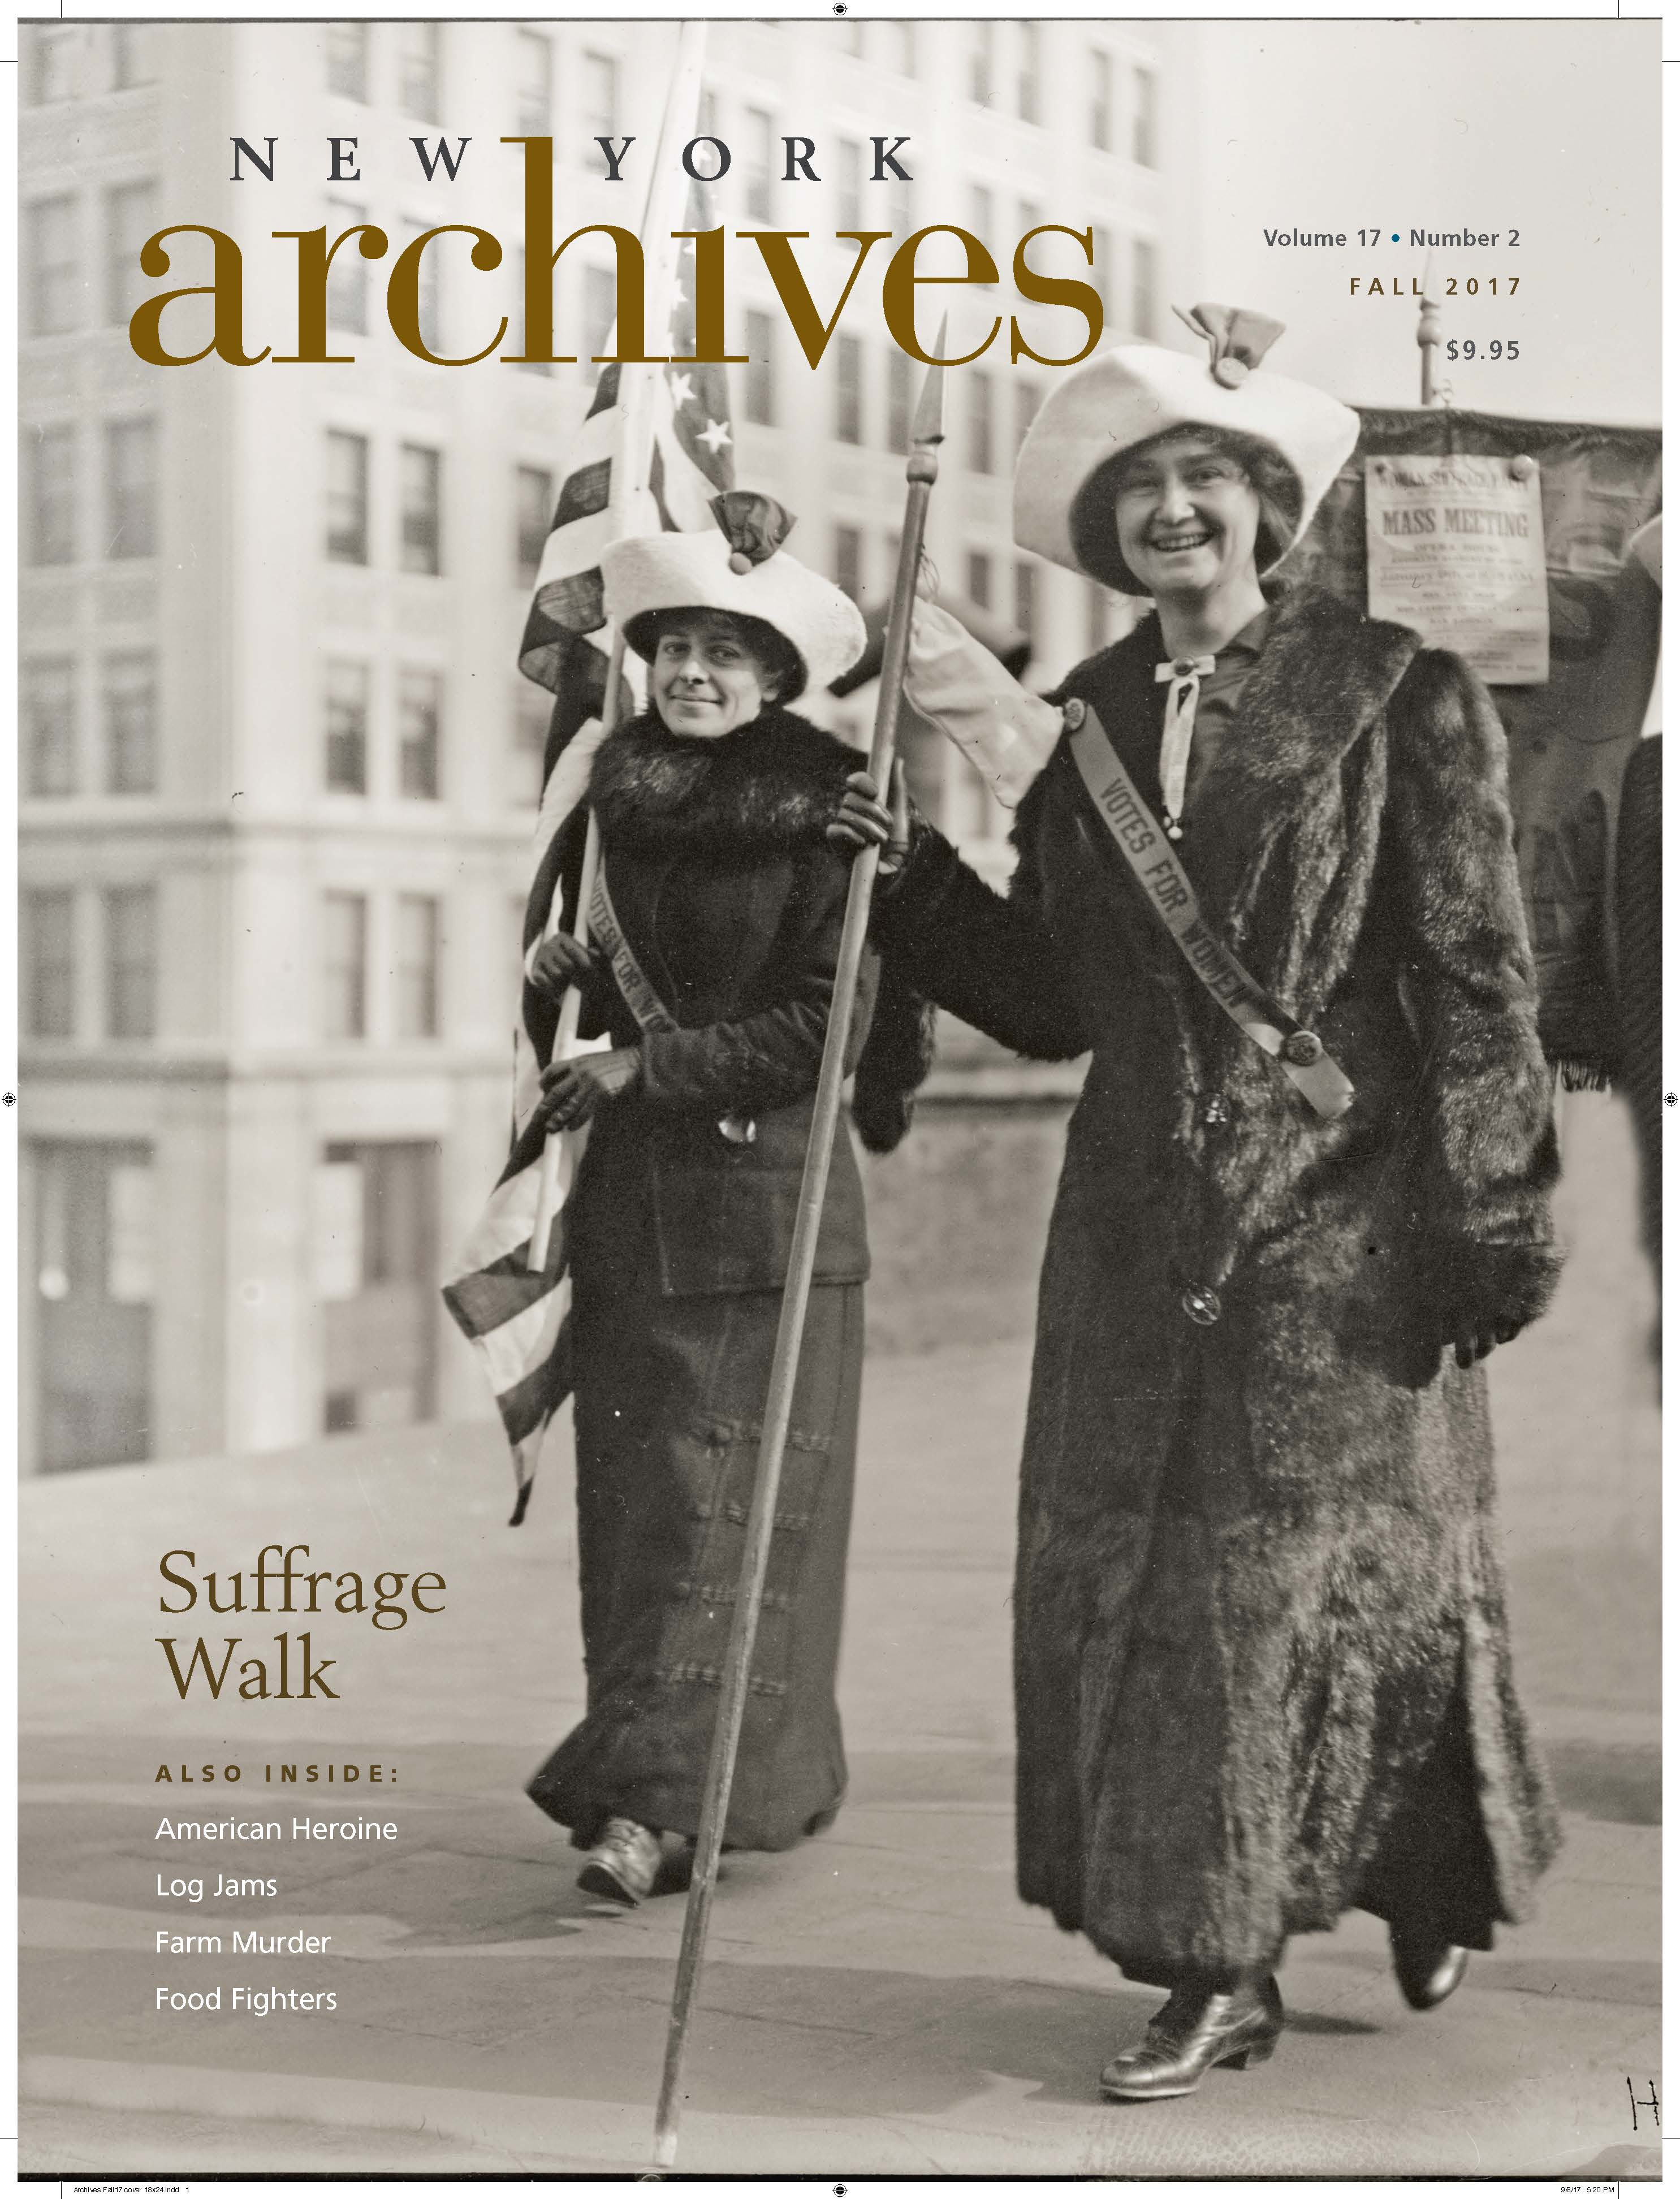 Archives Fall17 cover 18x24_web.jpg